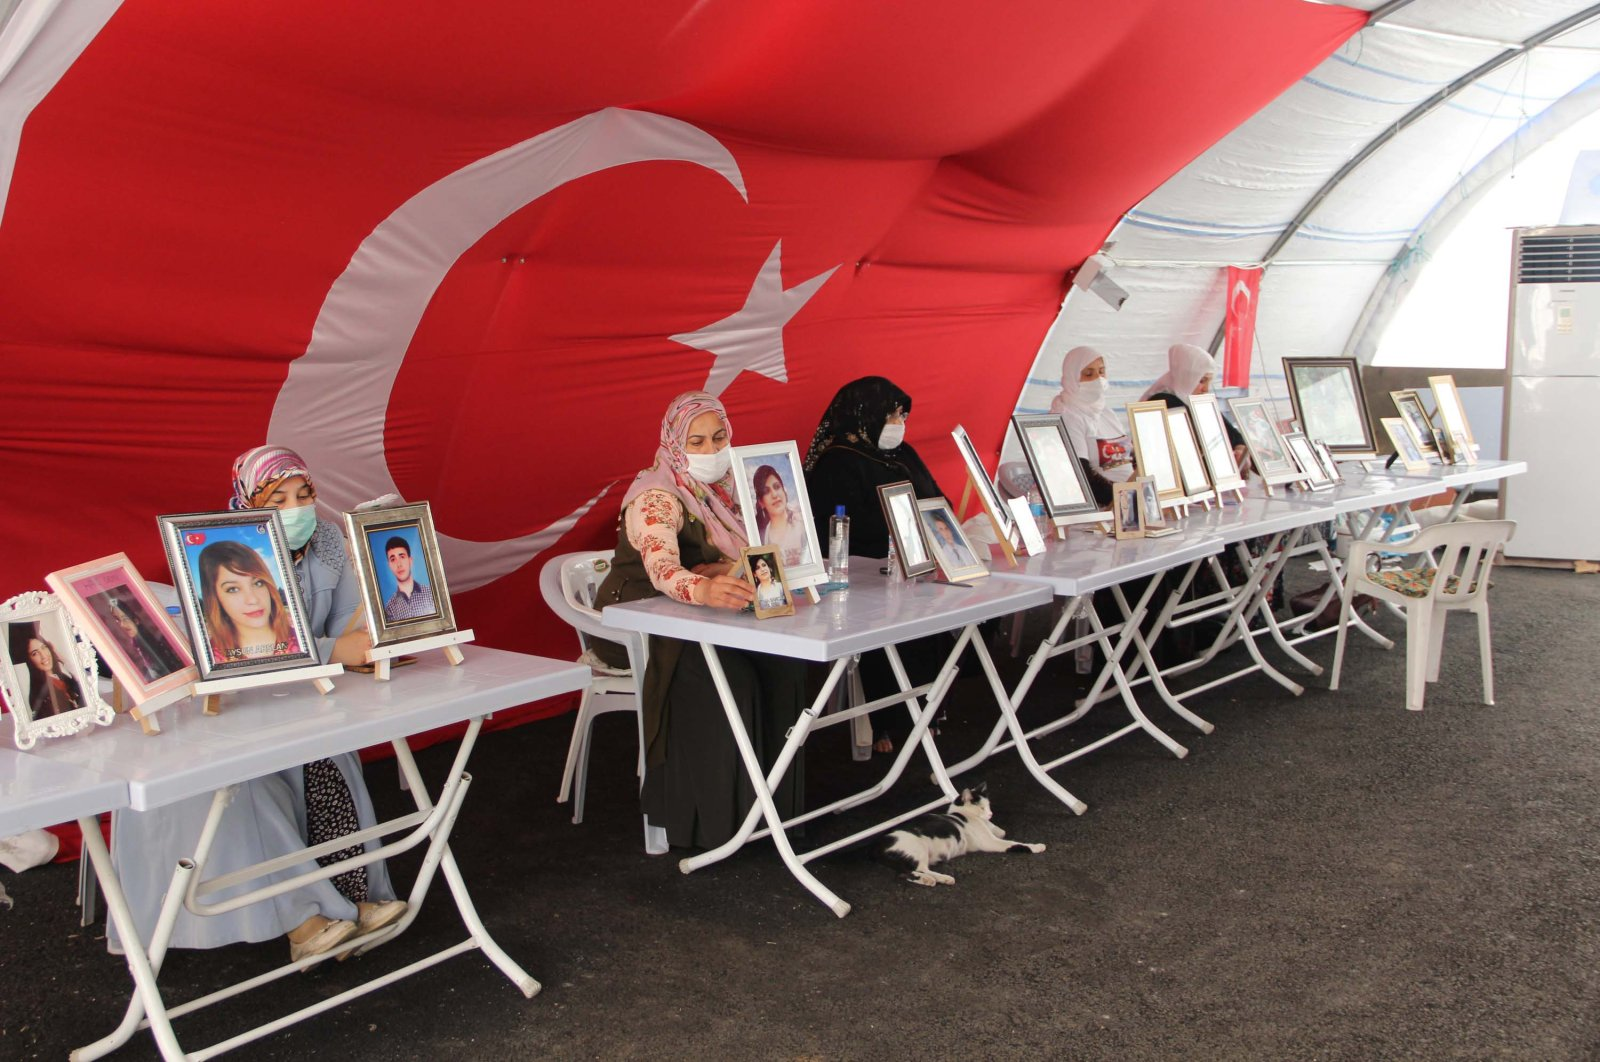 Kurdish mothers whose children were abducted by the YPG/PKK have been staging a sit-in protest in southeastern Turkey's Diyarbakır, July 5, 2020. (DHA Photo)